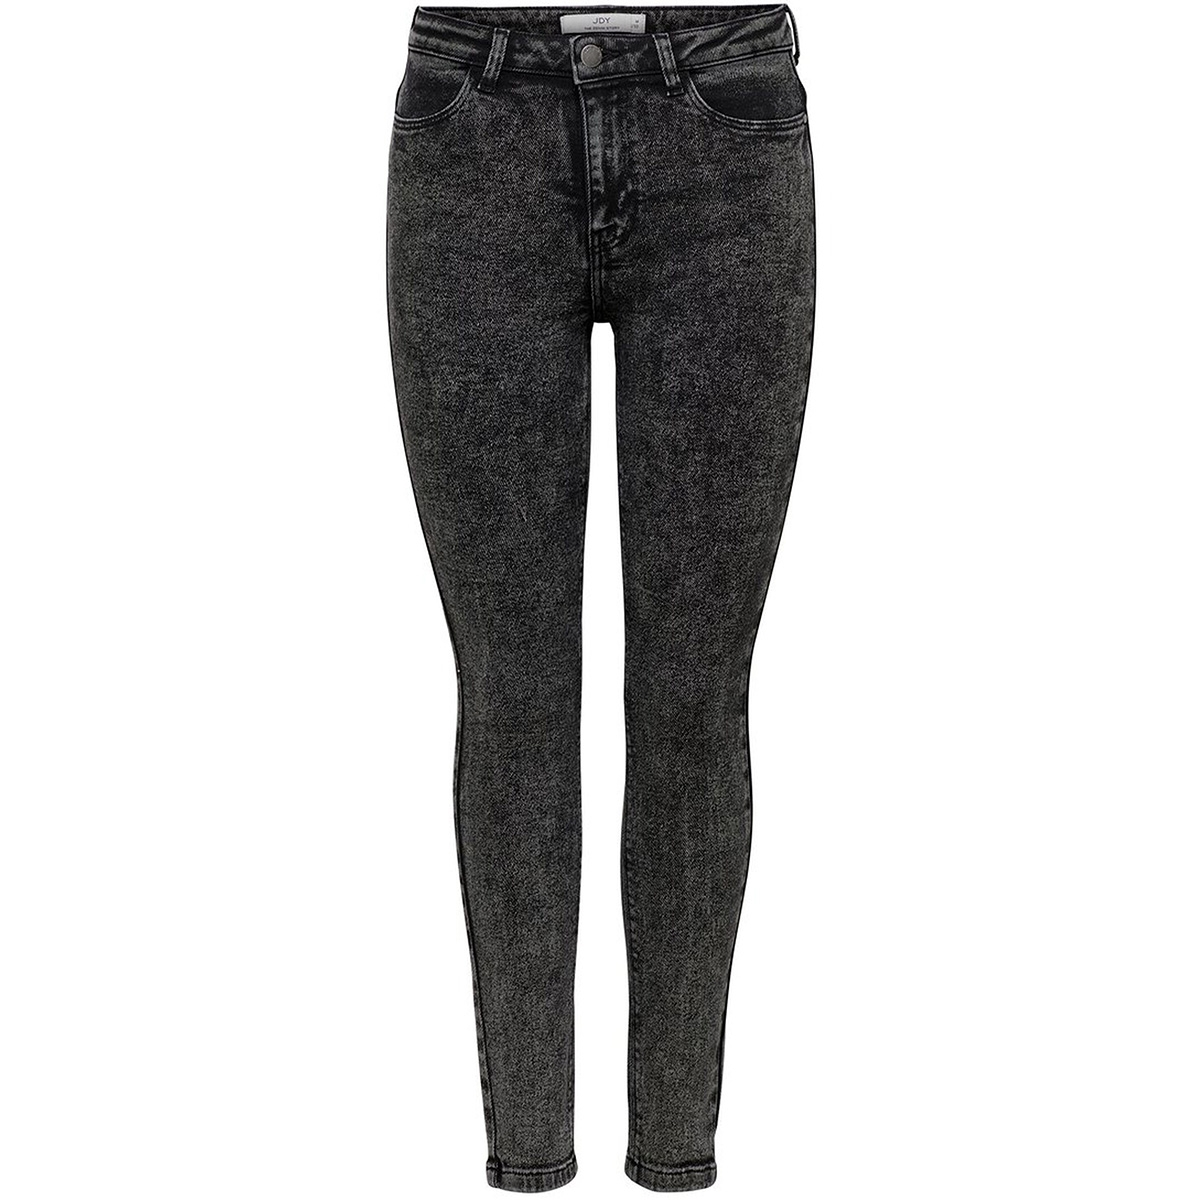 jdytyga high skinny acid dark grey 15196922 jacqueline de yong jeans dark grey denim